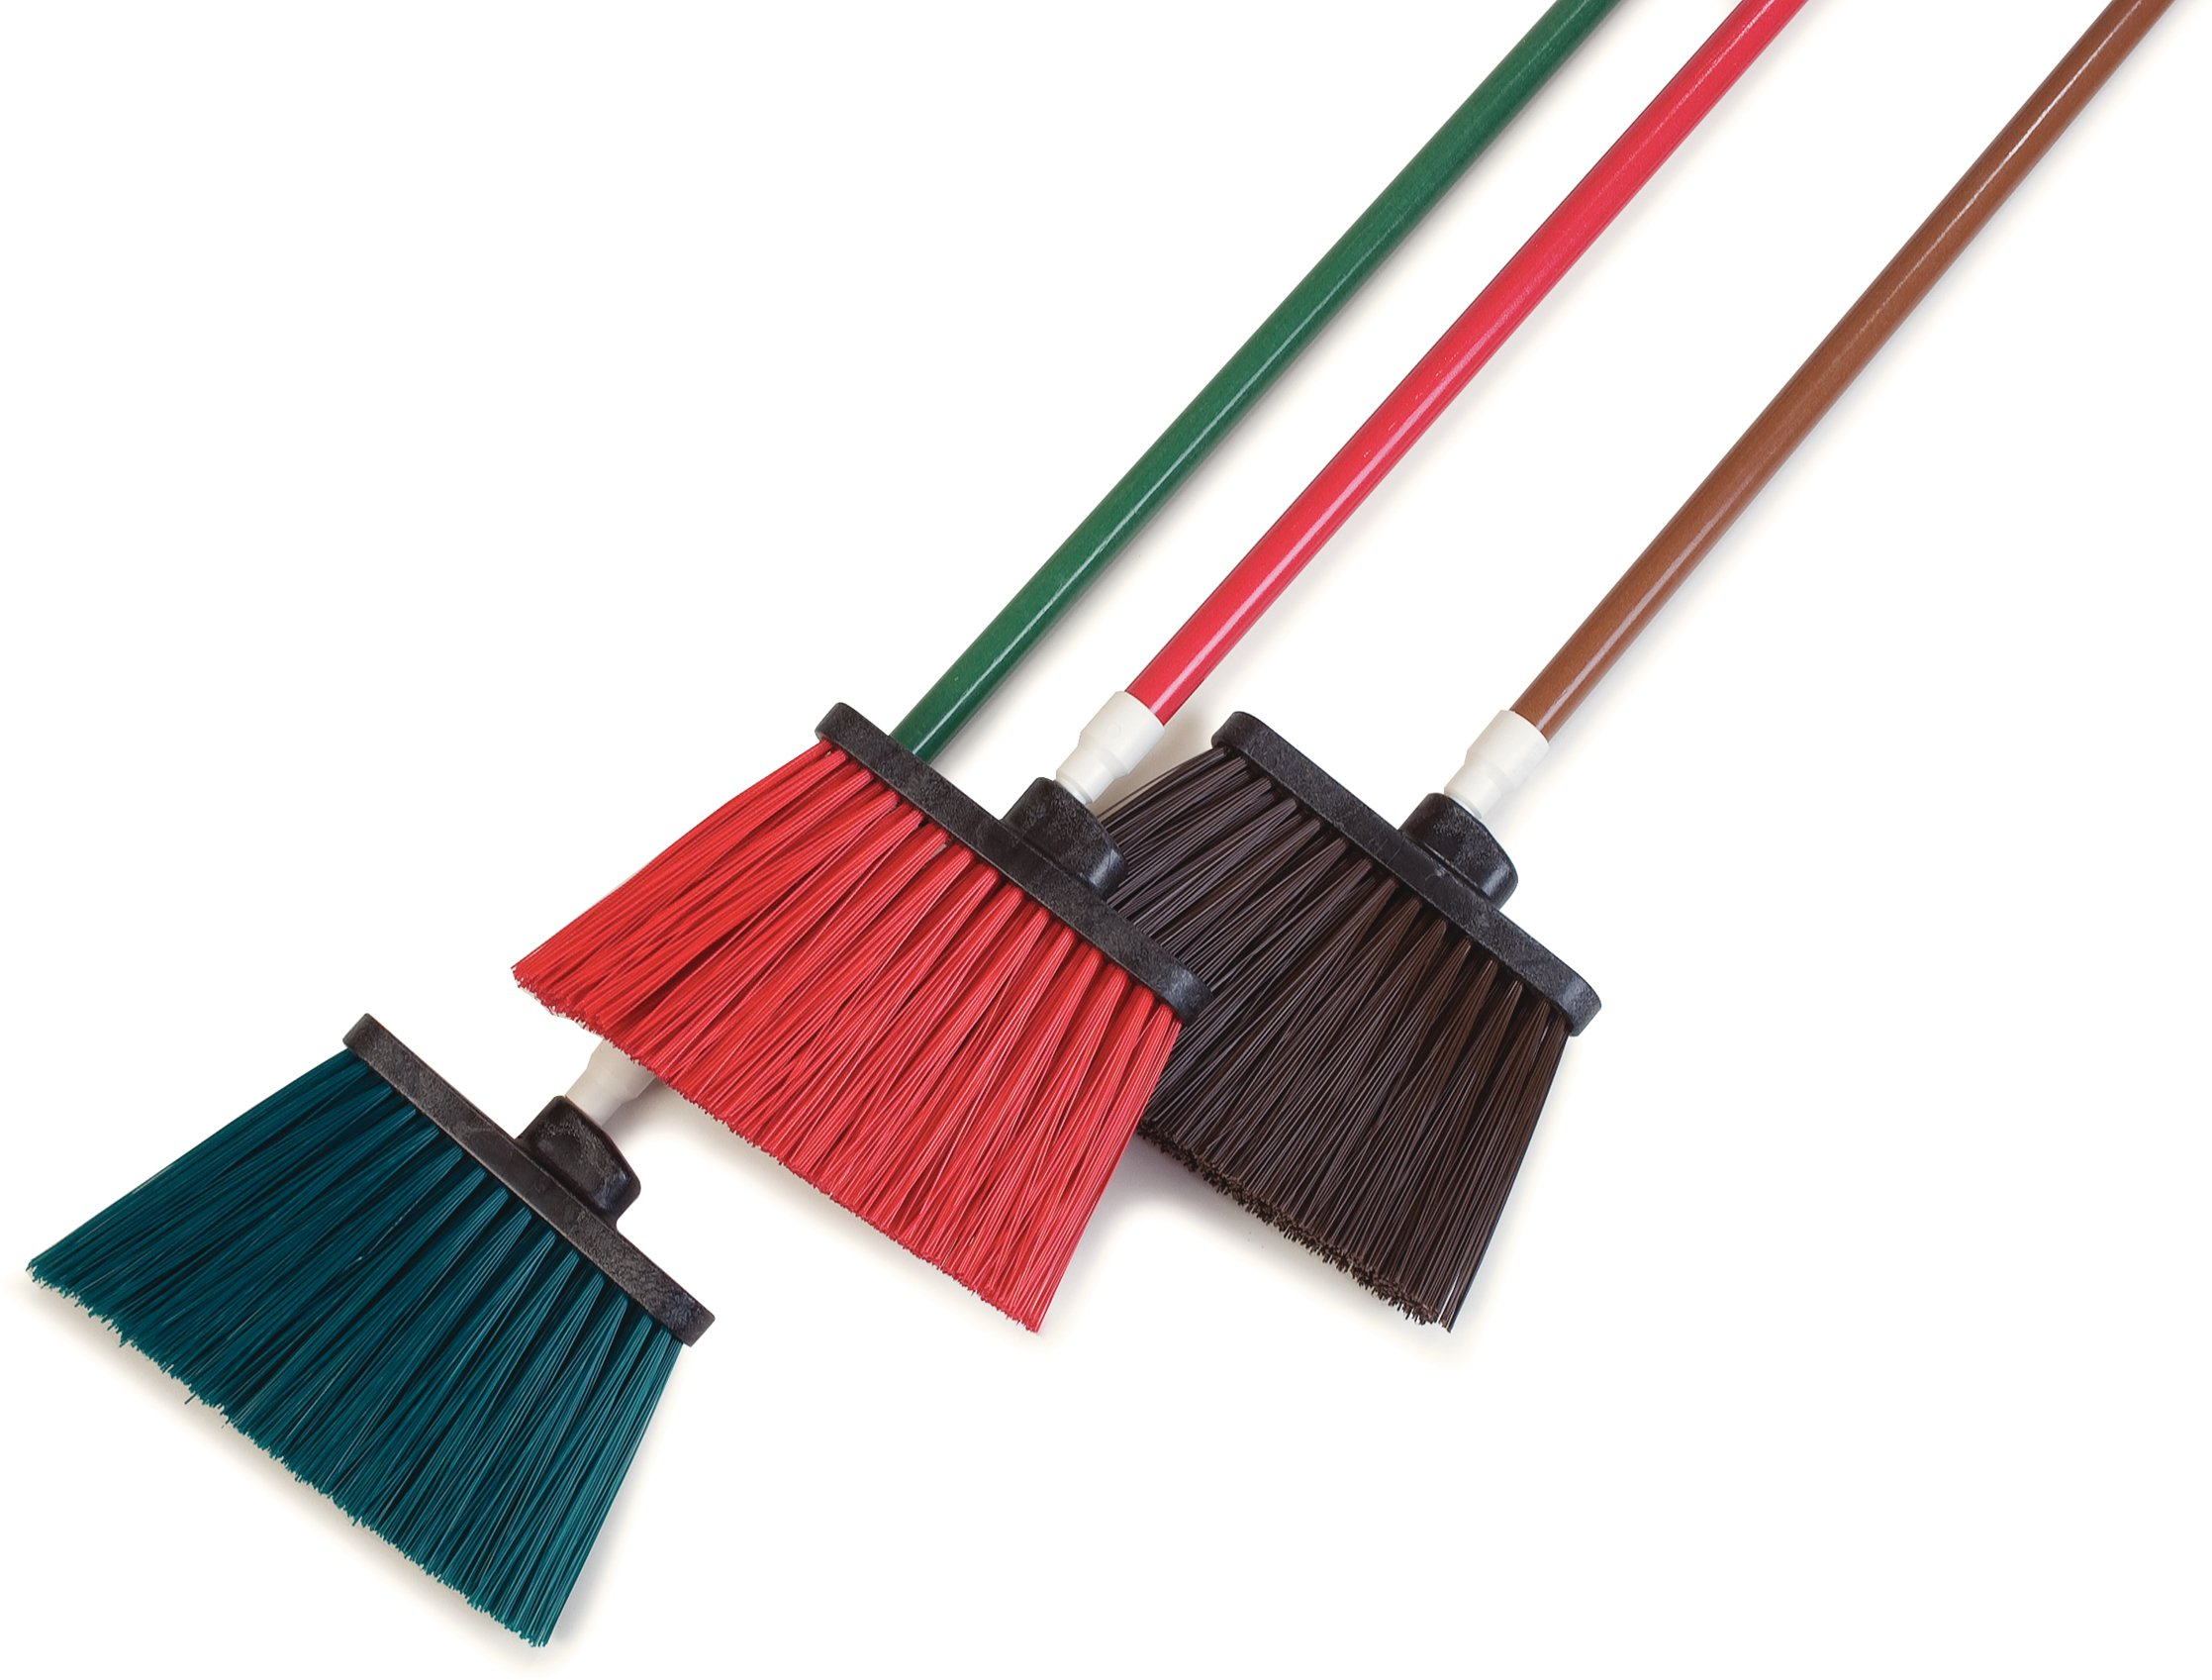 Carlisle 4108305 Sparta Duo-Sweep Unflagged Angle Broom with Fiberglass Handle, 54'' Length, Red (Pack of 12) by Carlisle (Image #9)